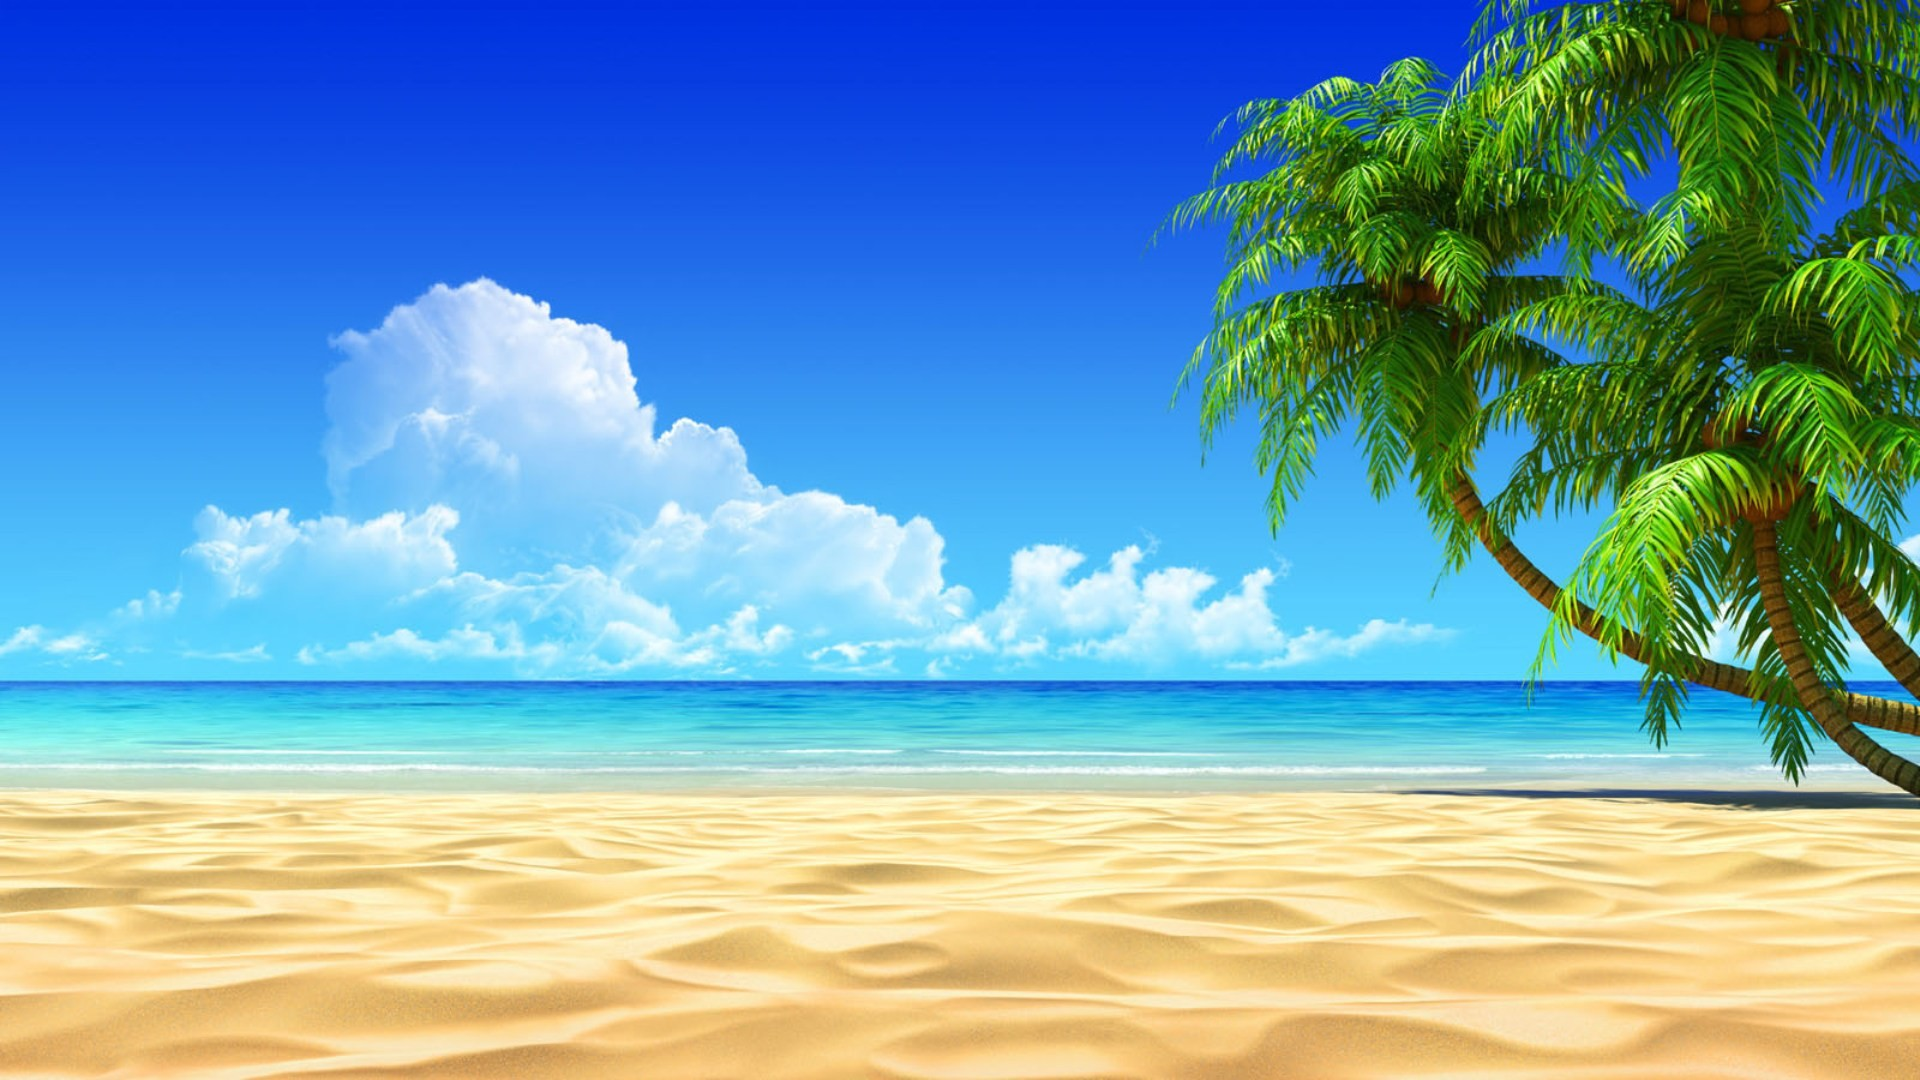 1920x1080 Free Beach Screensavers